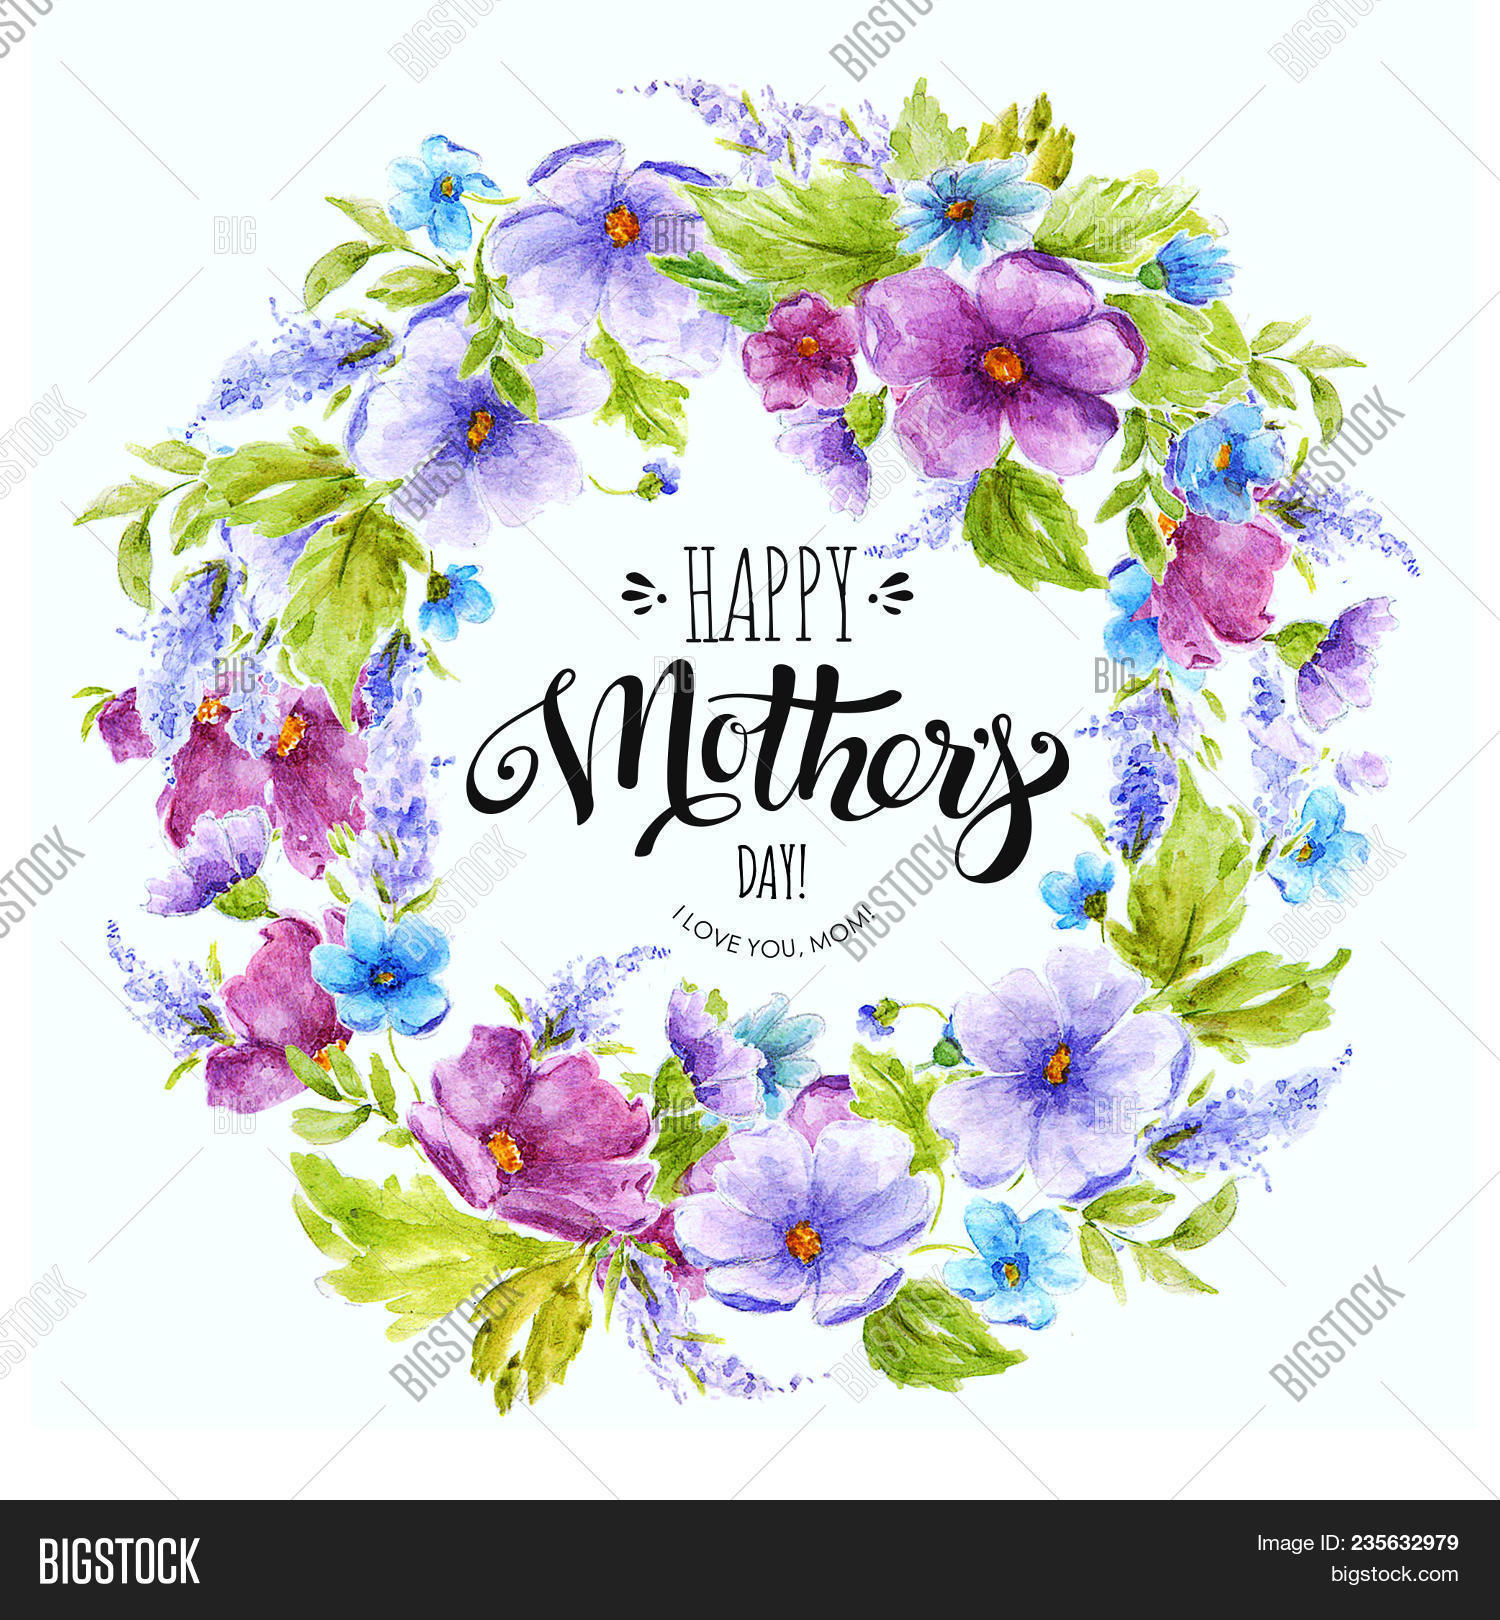 Happy Mother\'s Day Image & Photo (Free Trial) | Bigstock